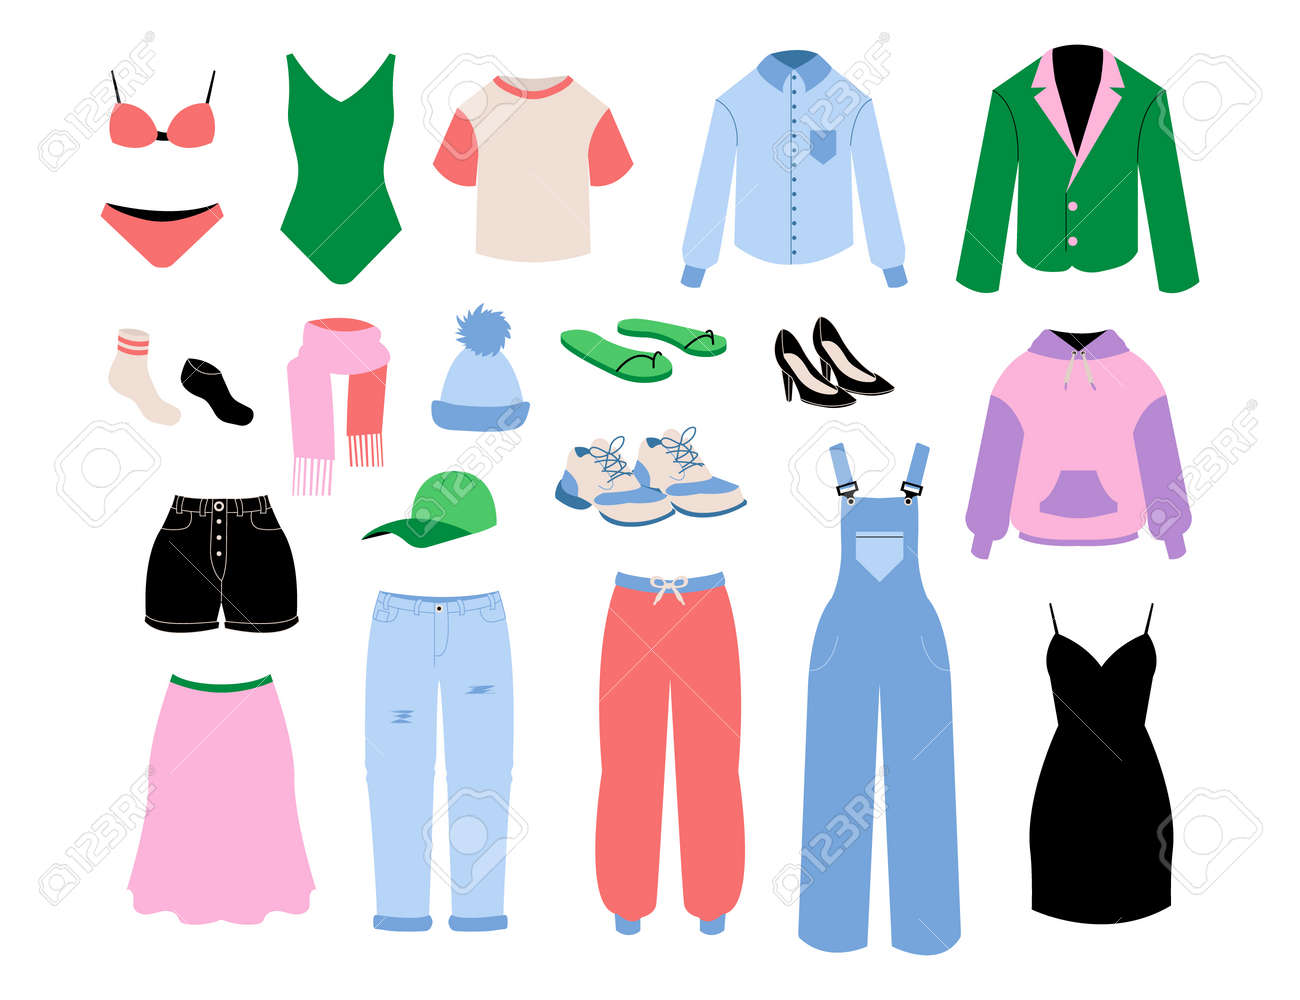 Women clothes. Cartoon fashion girls and adult seasonal outfits. Skirt and shirt. Bright pants or shoes. Casual and business clothing. Underwear and accessories. Vector garments set - 173355724